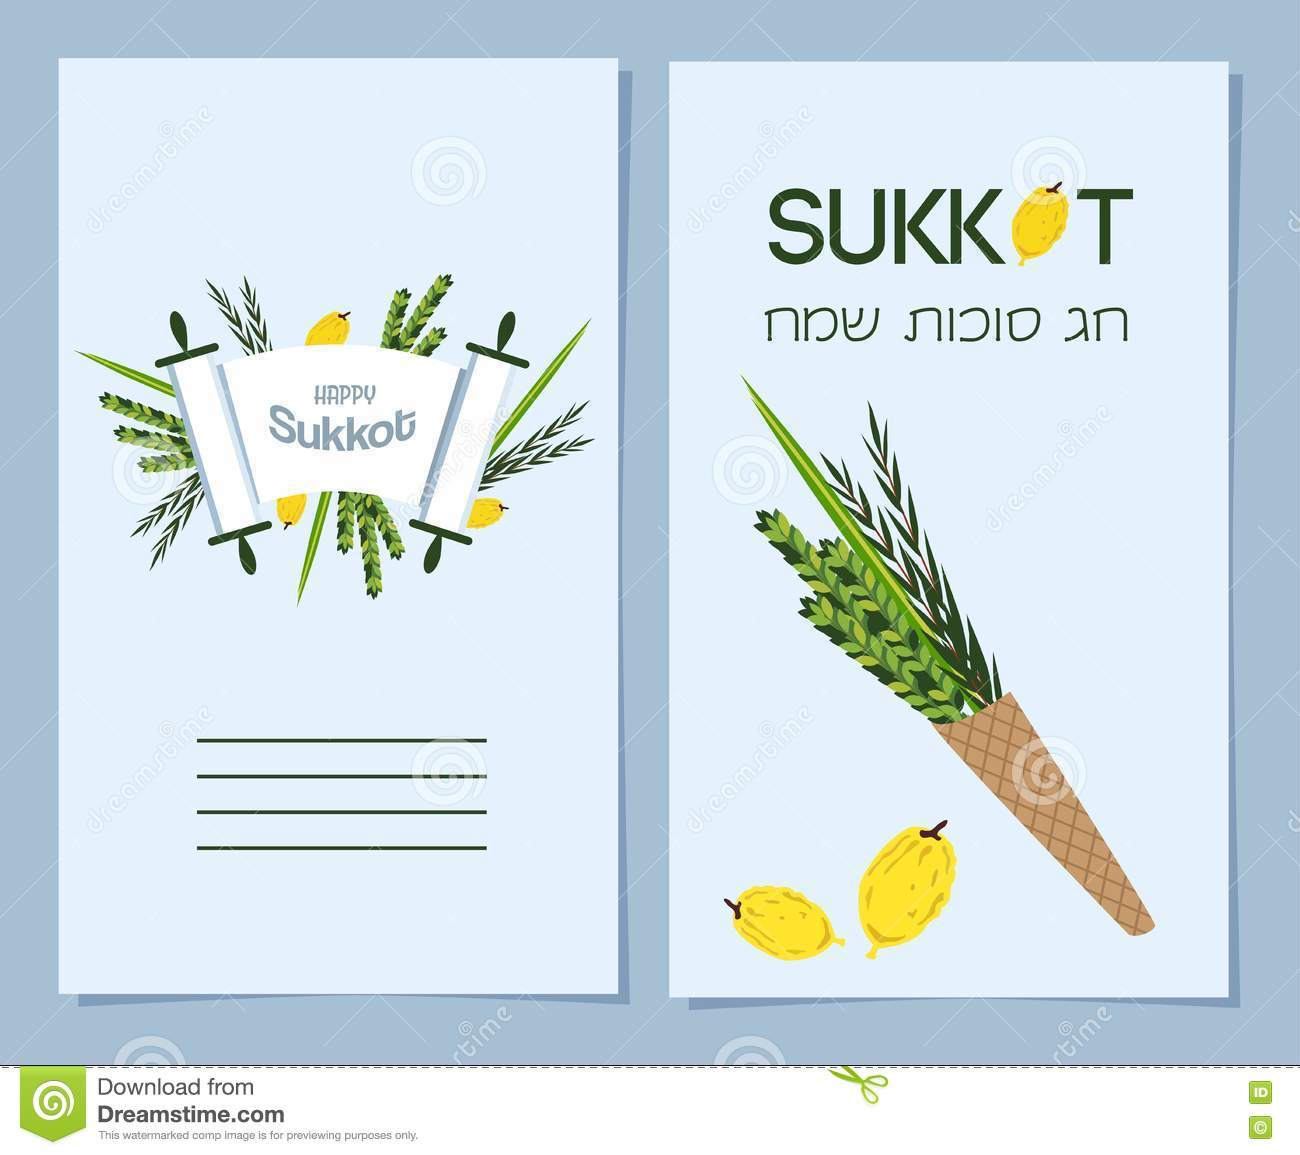 Greeting Cards For Jewish Holiday Sukkot Happy In Hebrew Stock